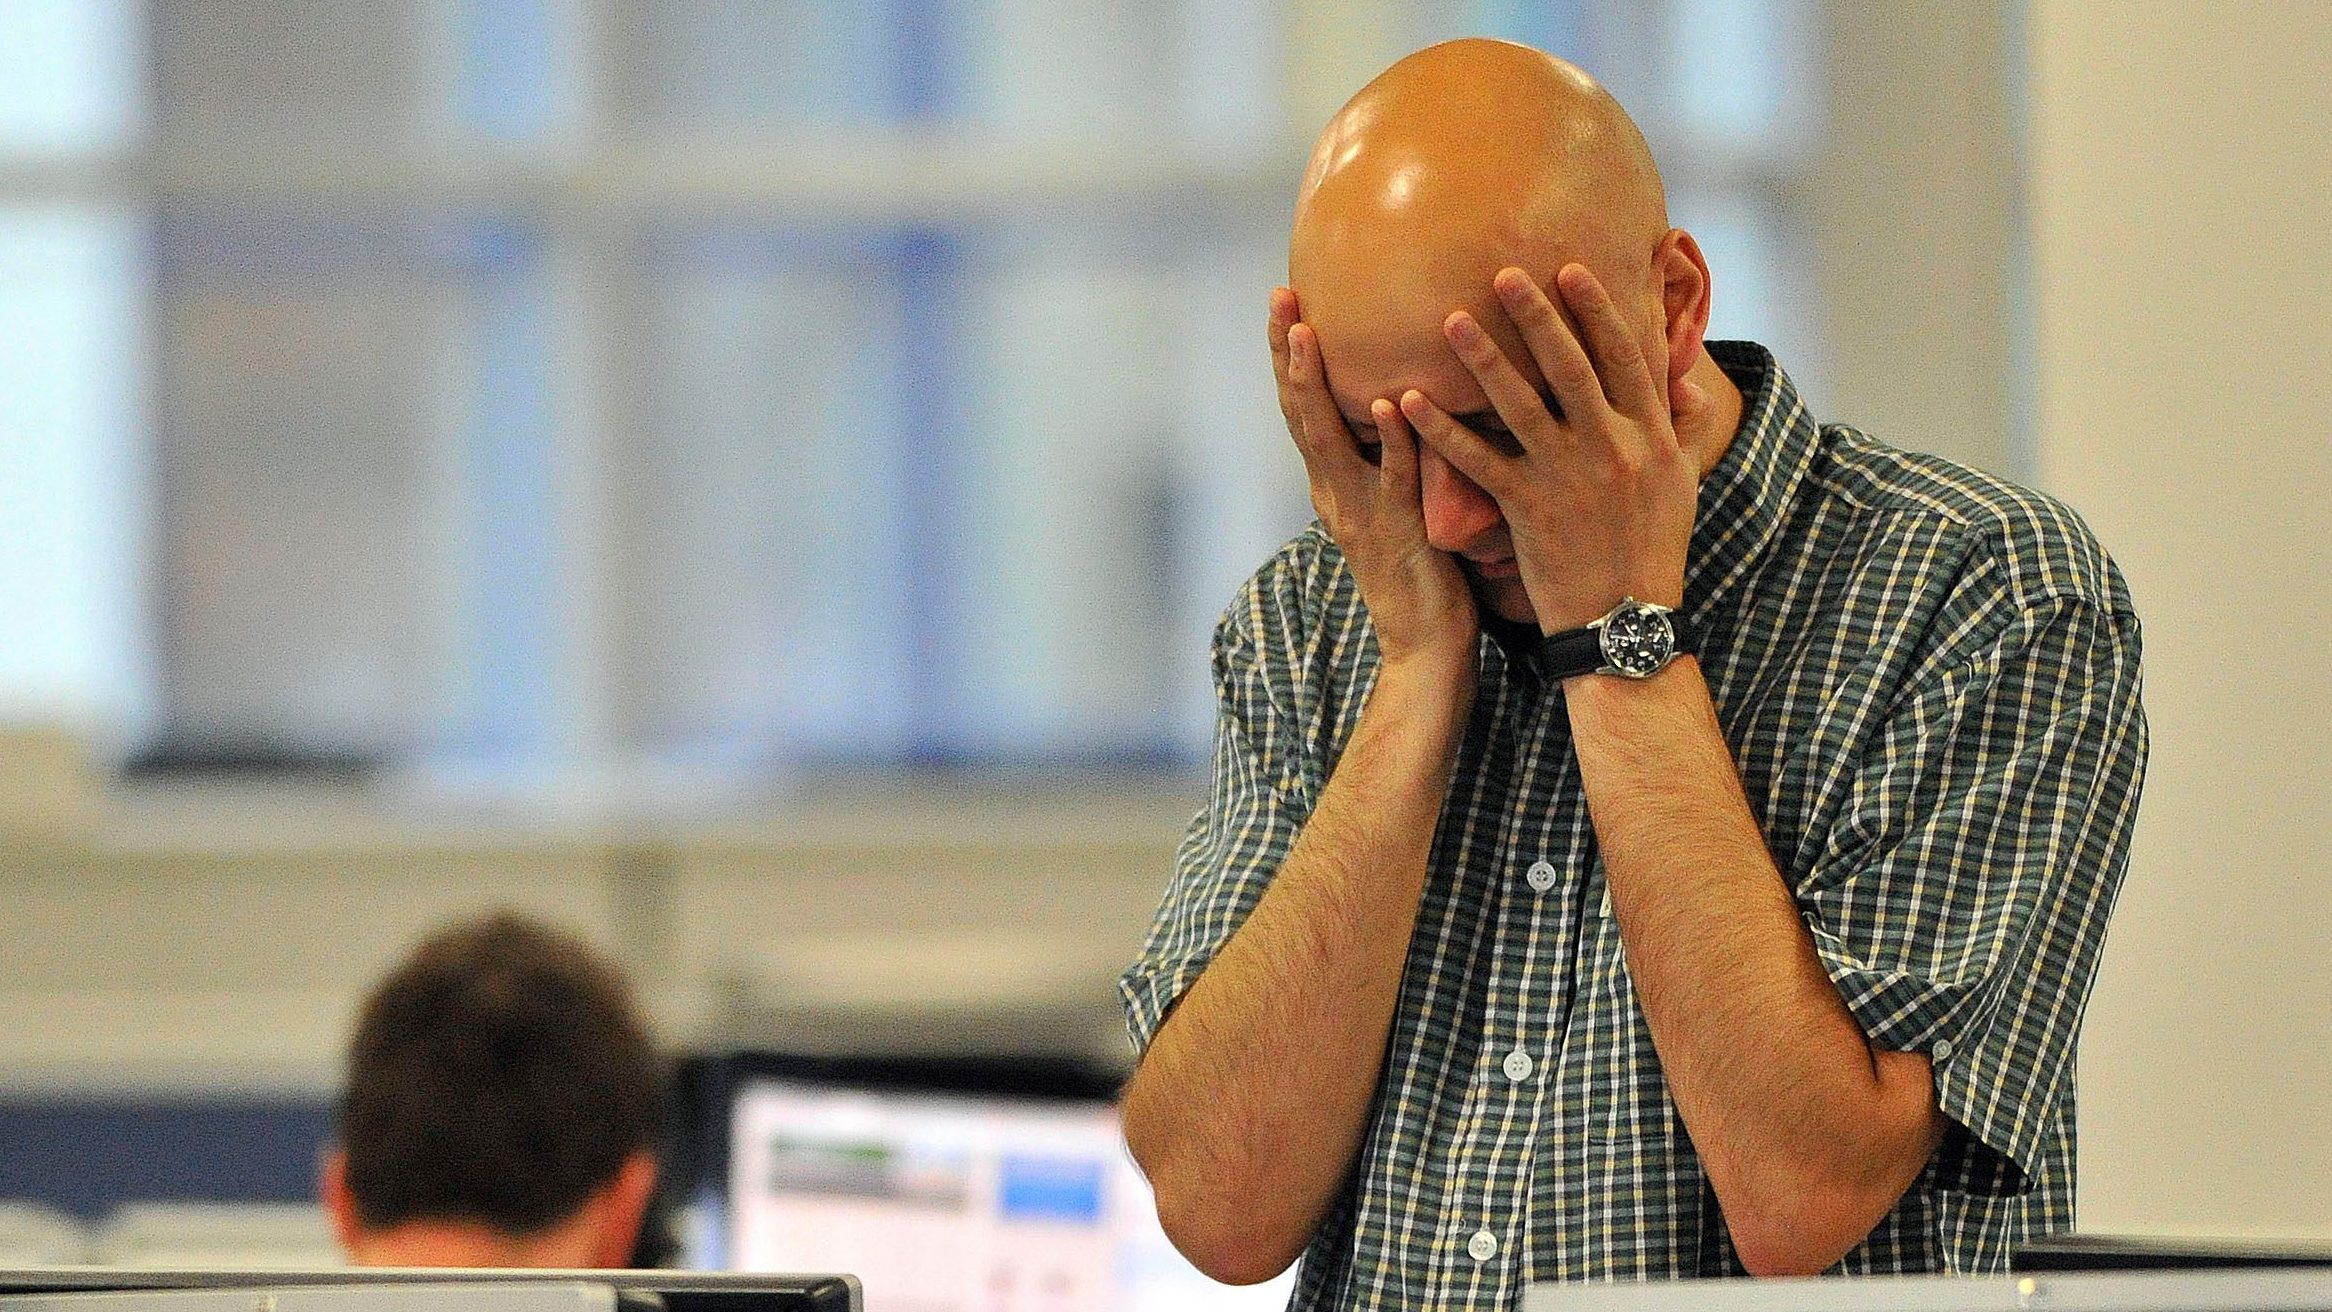 A dealer reacts on the trading floor of IG Index in the City of London August 11, 2011.